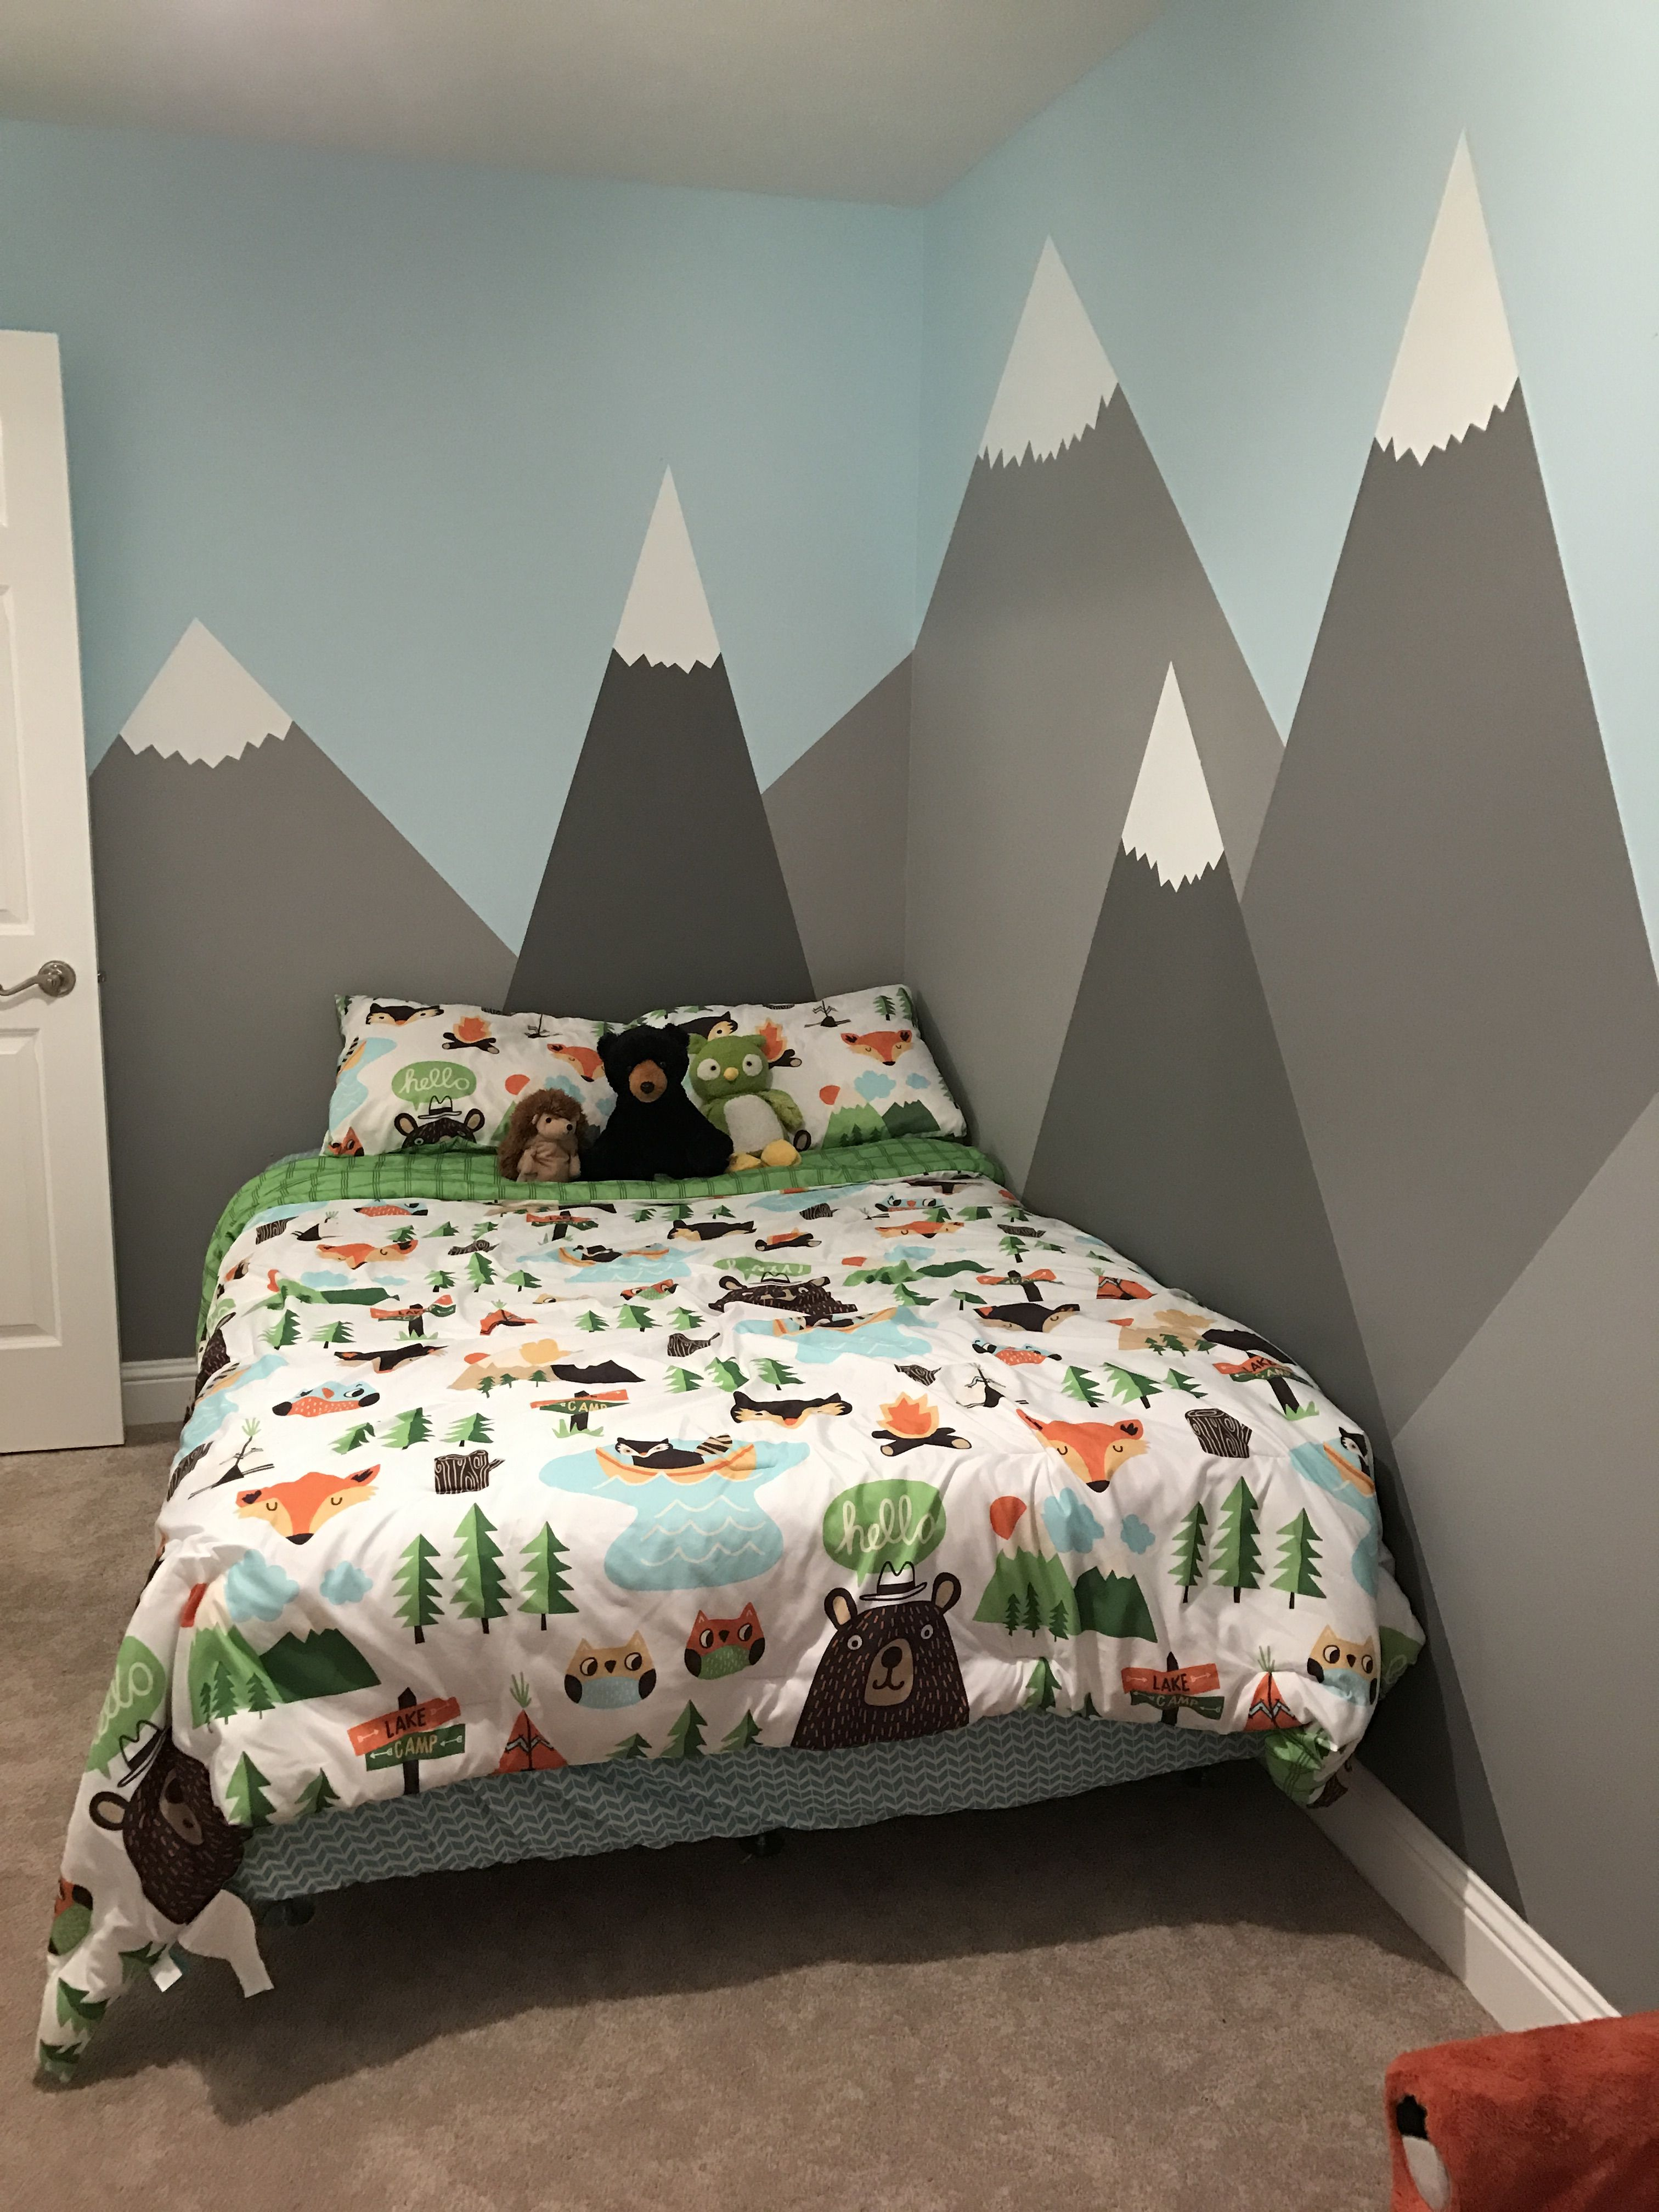 Superieur Find Inspiration To Create The Most Luxurious Bedroom For Boys With The  Latest Interior Design Trends